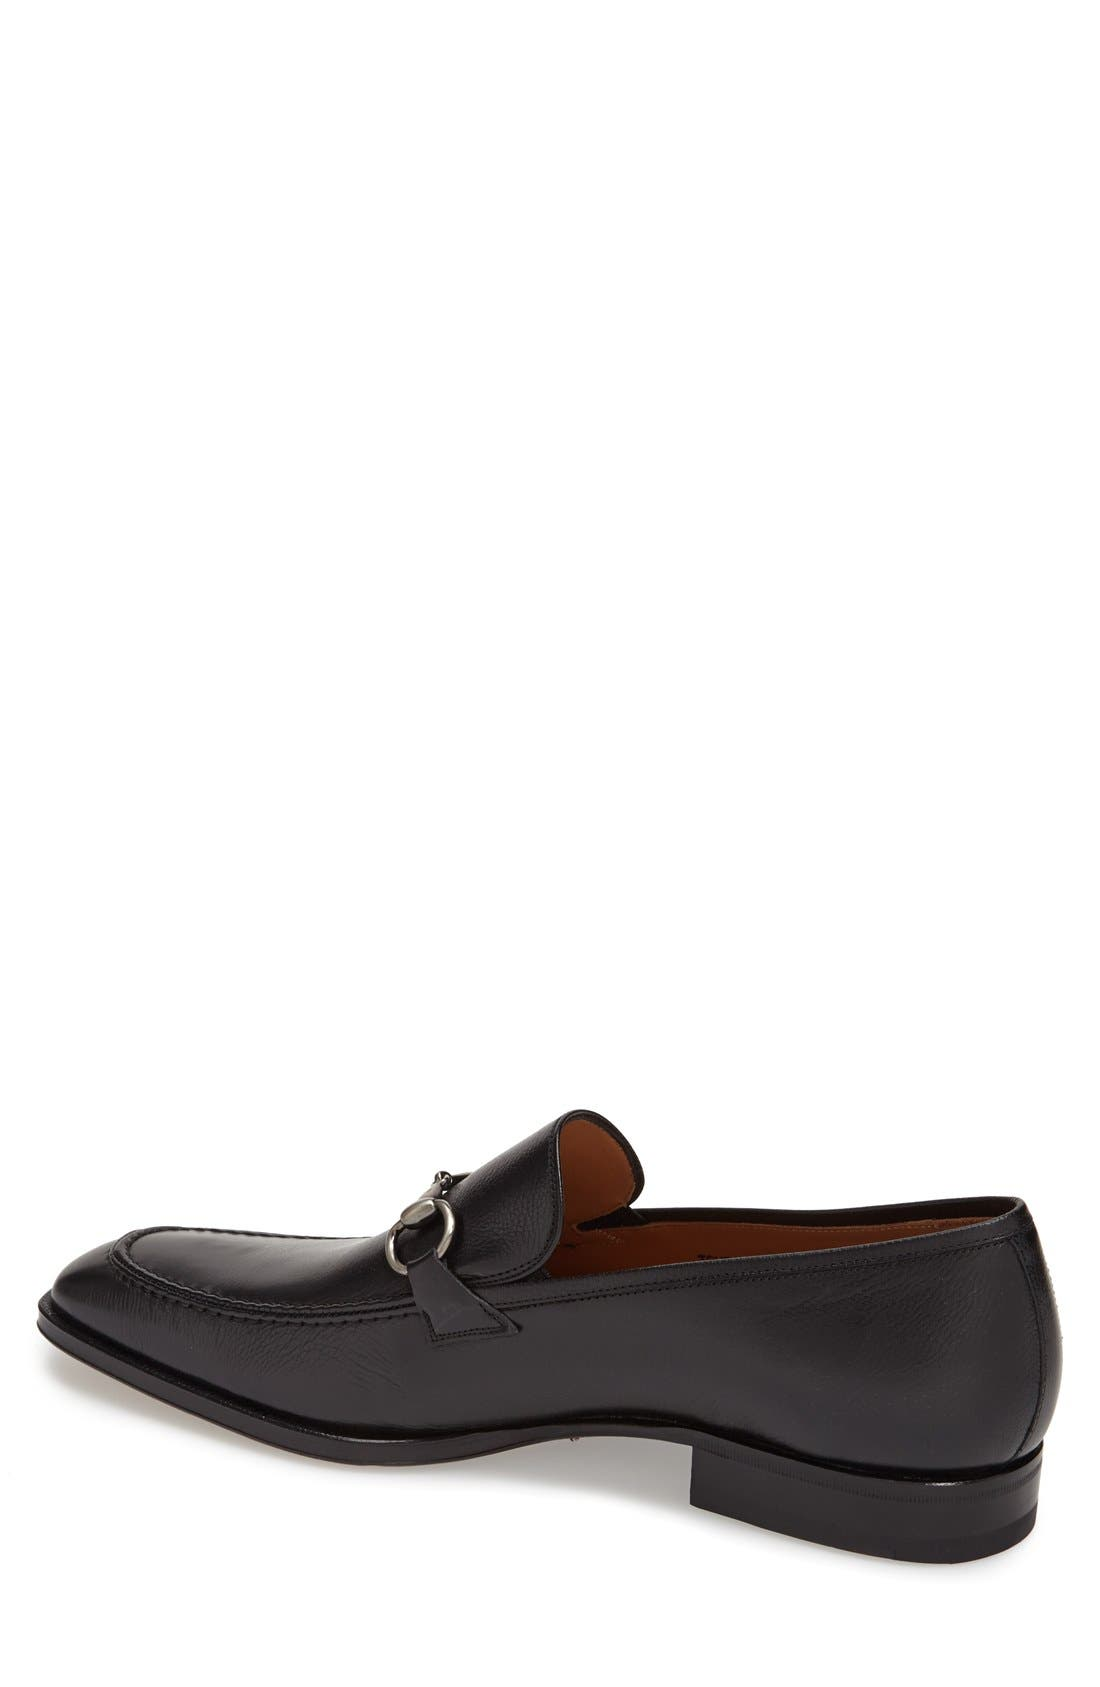 'Tours' Leather Bit Loafer,                             Alternate thumbnail 2, color,                             BLACK